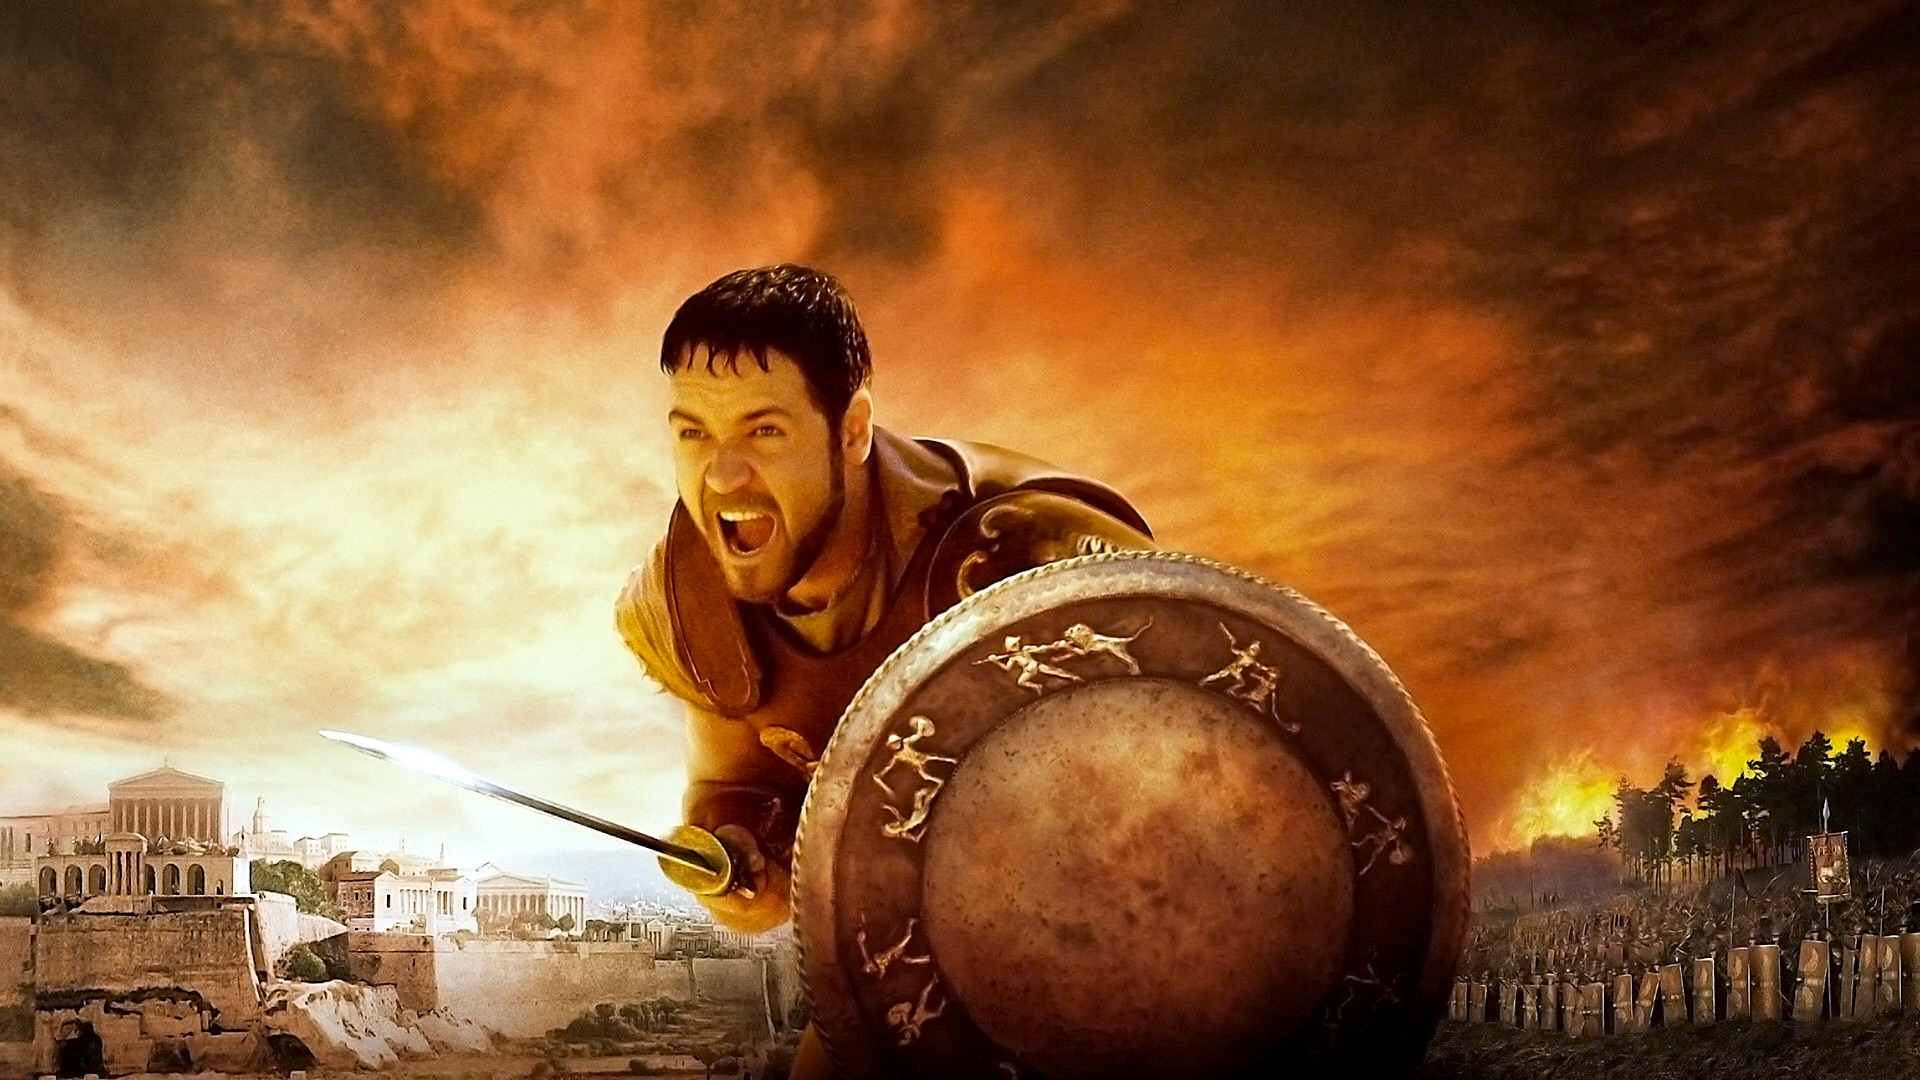 Movies Gladiator Movie Russell Crowe 1439x1403 Wallpaper: Gladiator Wallpaper Wallpapers High Quality